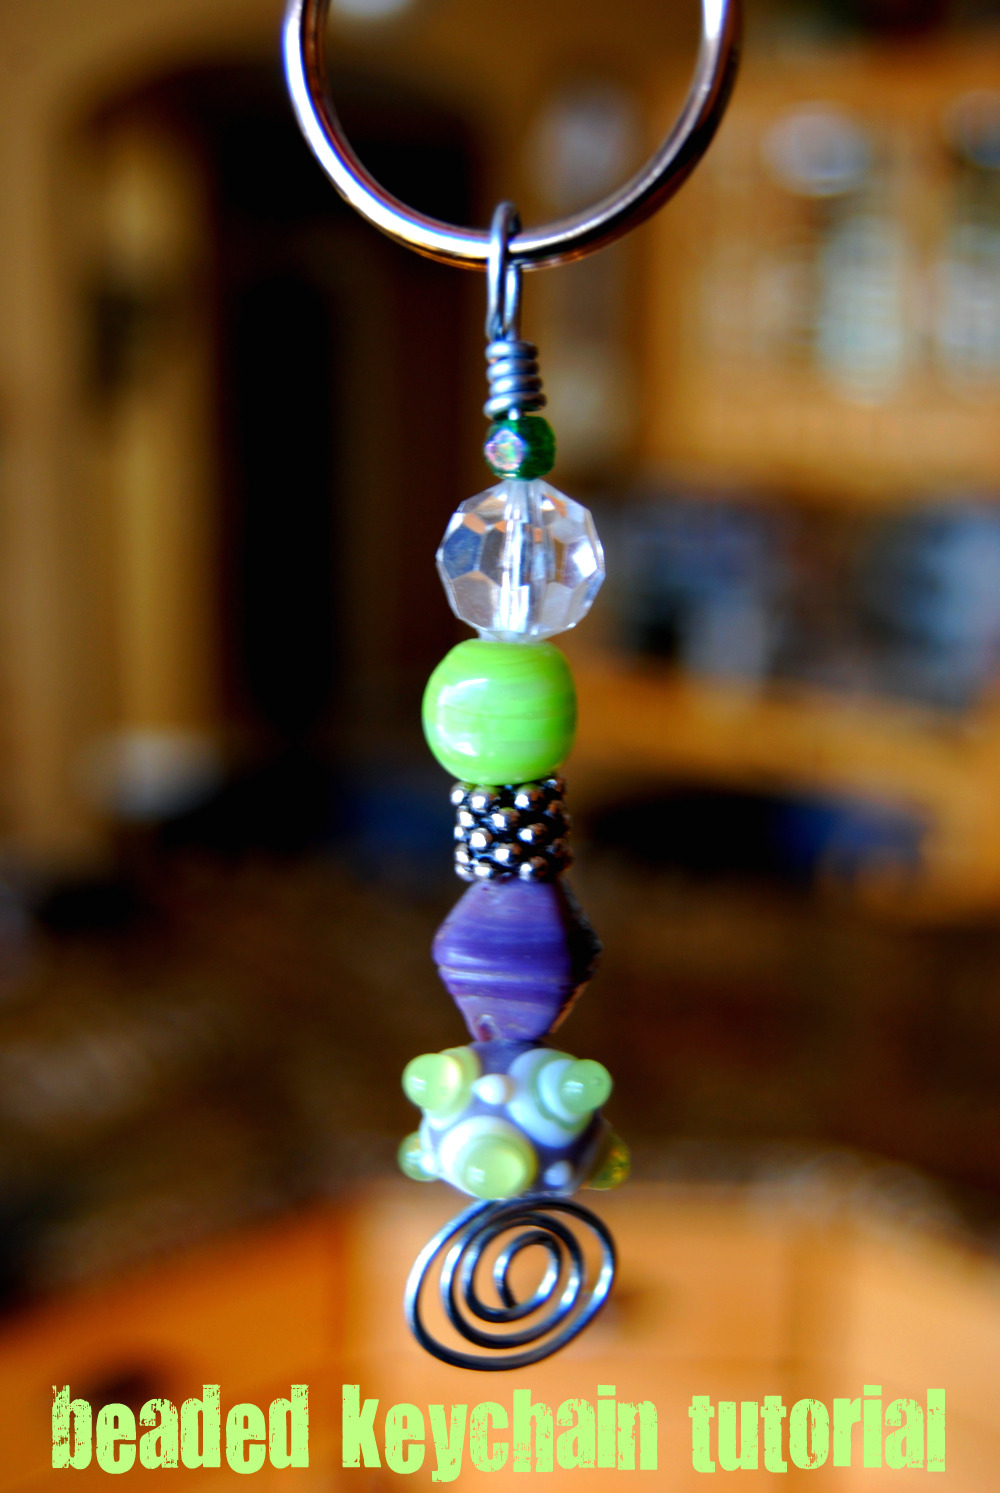 Beaded Keychain Tutorial My Blog Page 2 Circuit Board Glass Pendant Photo Necklace This Is A Really Fun Project To Make Its Fast And Makes Great Stocking Stuffer Or Small Gift For Teacher Babysitter I Started Making These